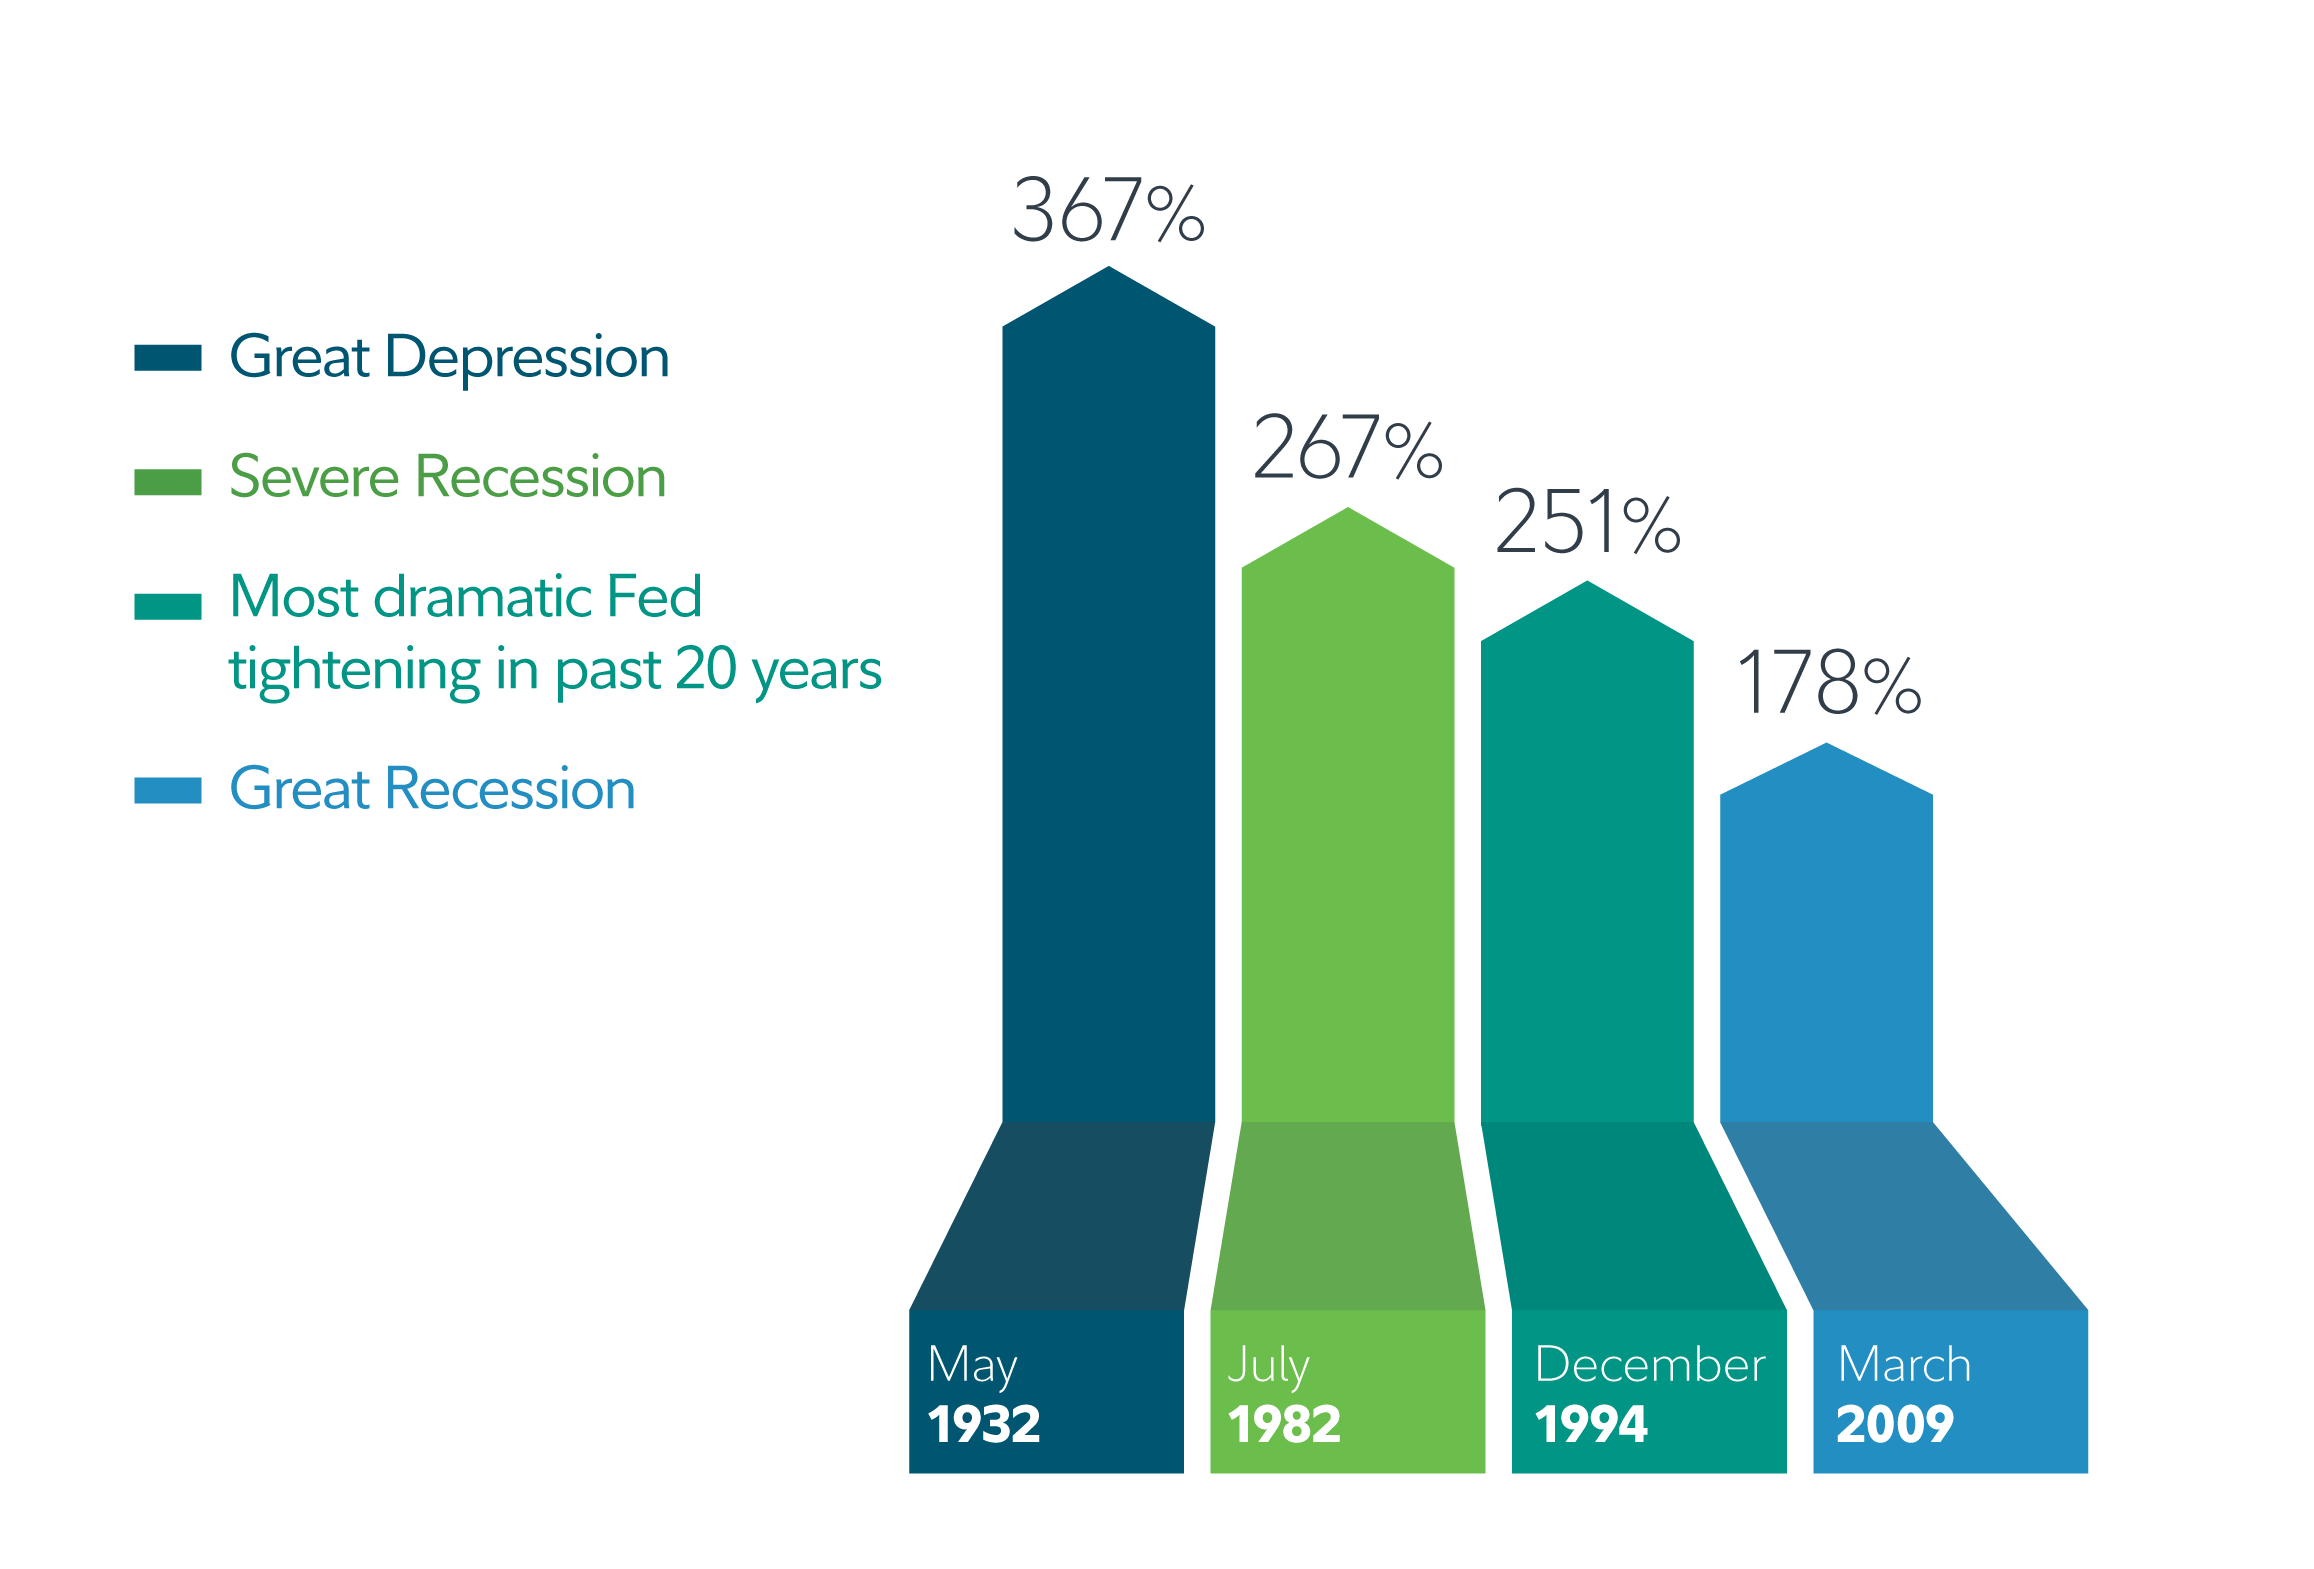 After the Great Depression ended, around May 1932, the subsequent 5-year return of the S&P 500 Index was 367%.